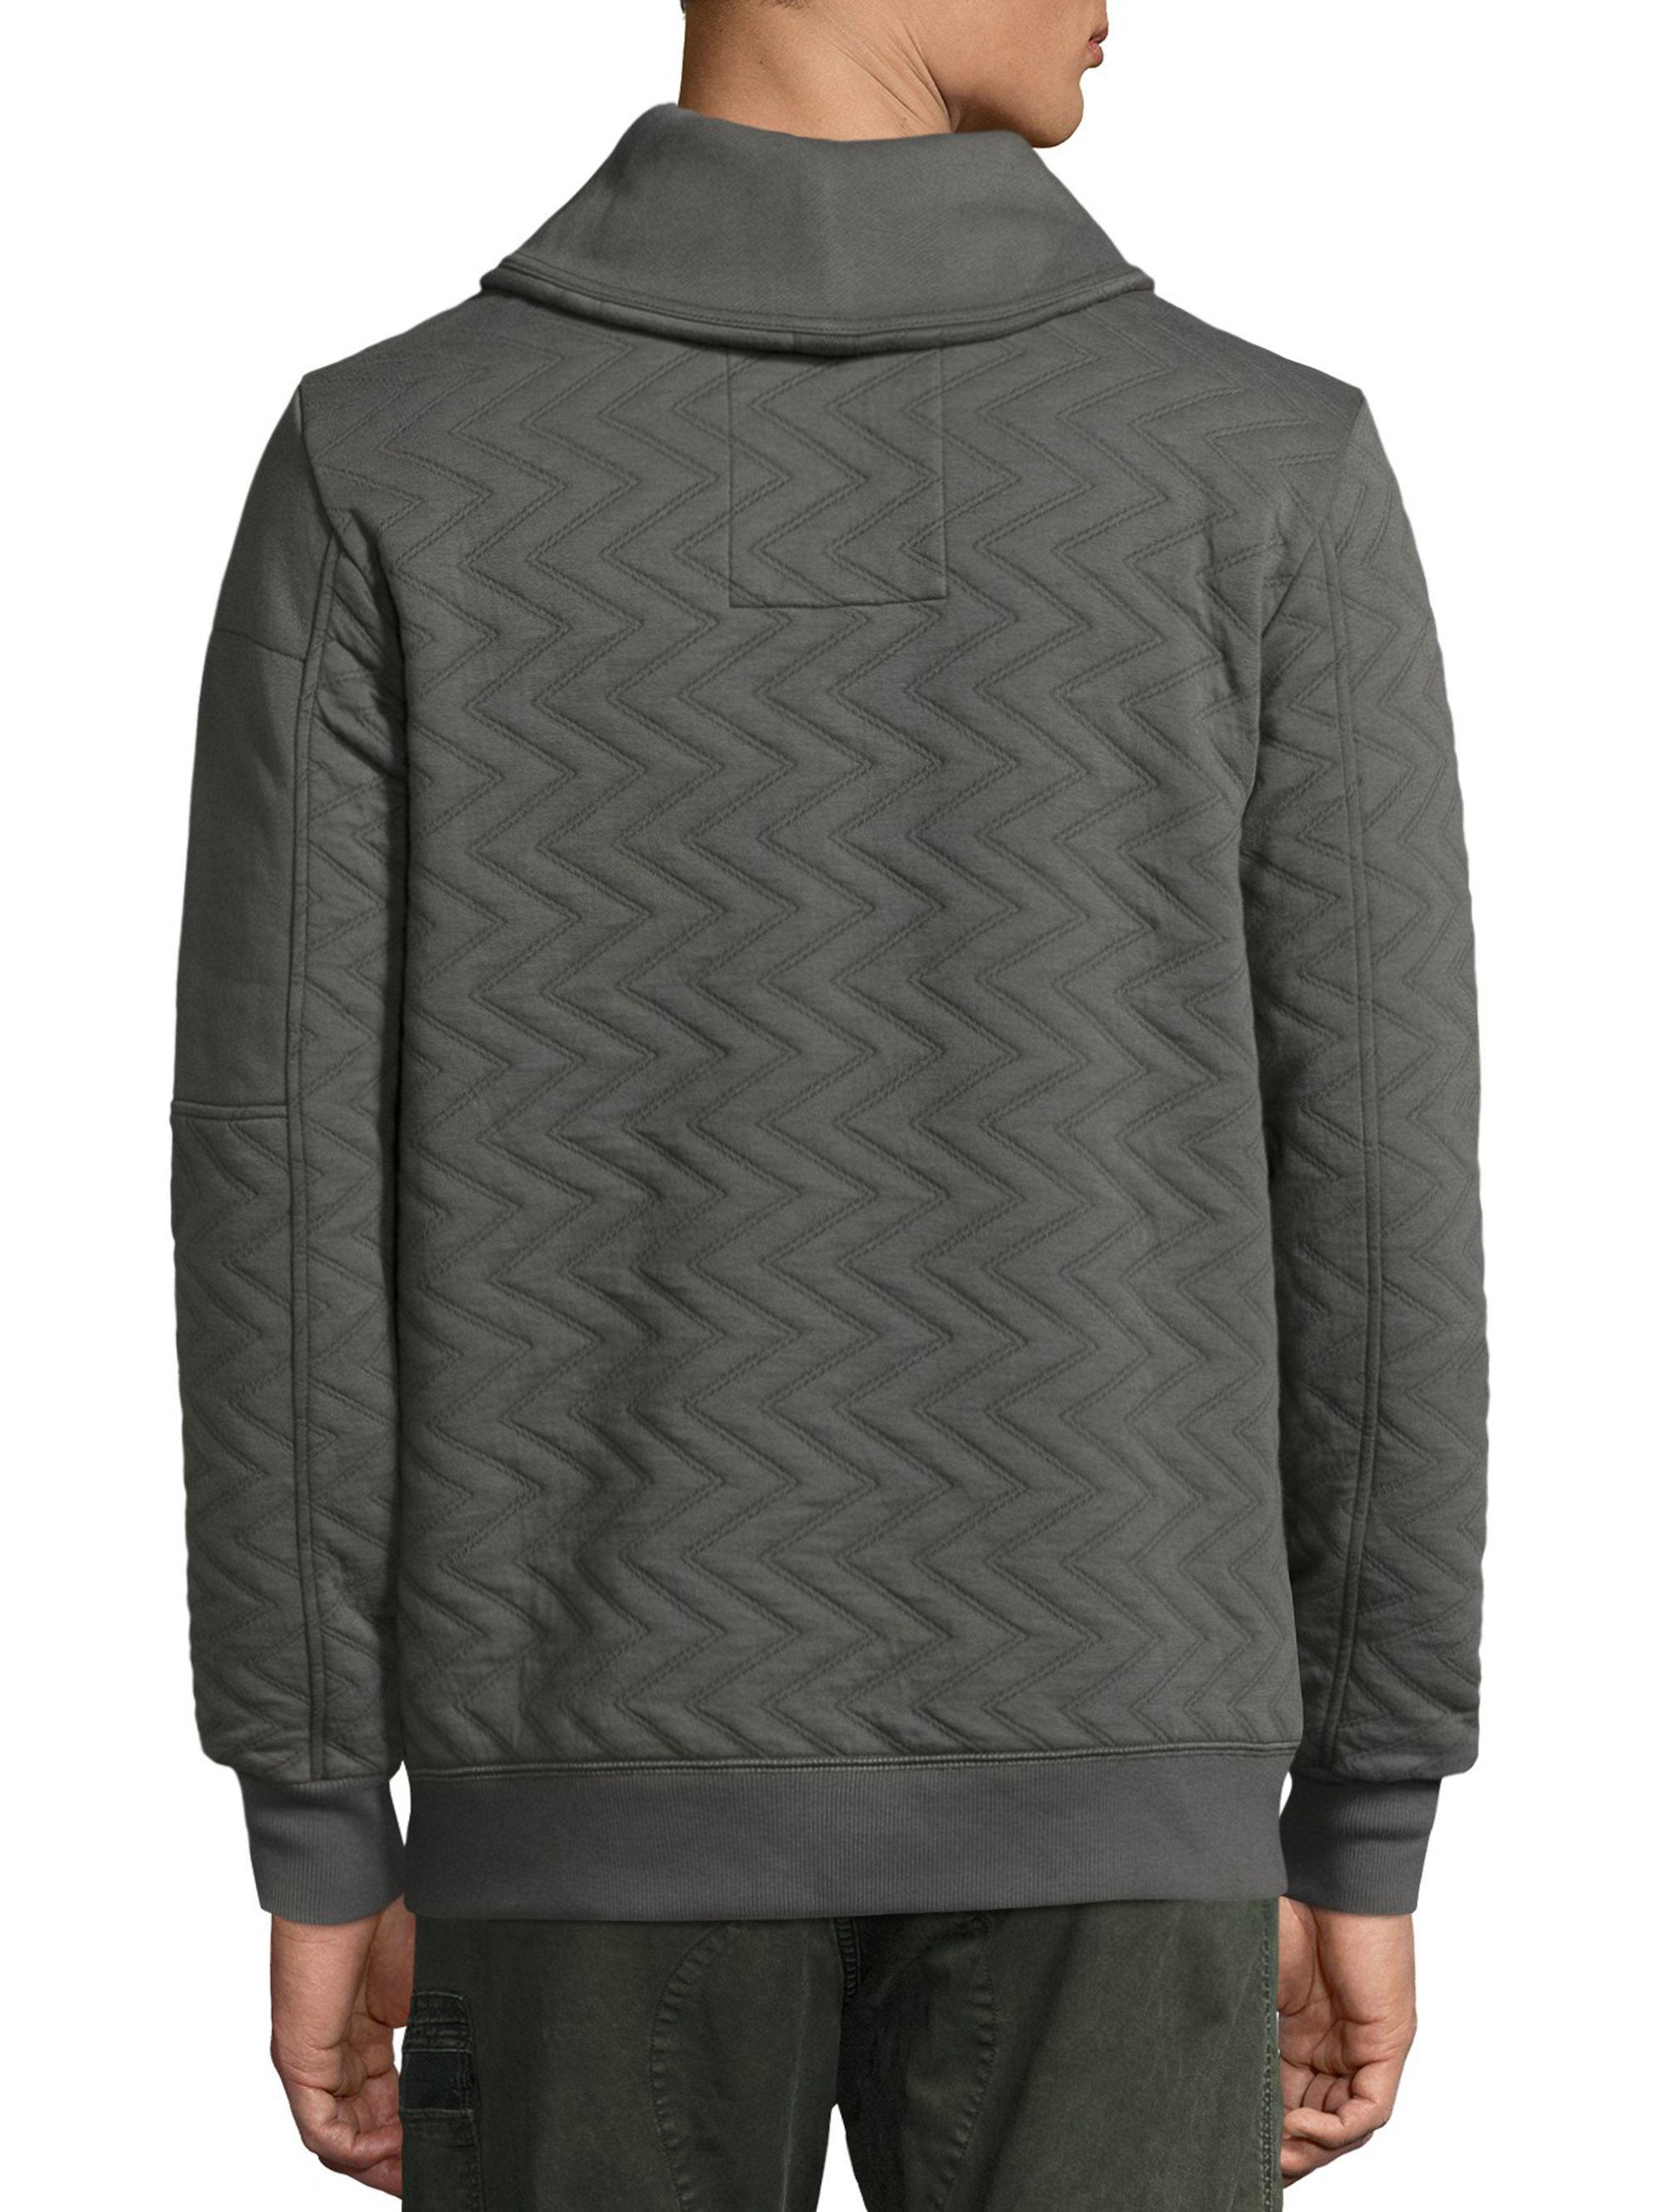 g star raw long sleeve chevron pullover in gray for men lyst. Black Bedroom Furniture Sets. Home Design Ideas